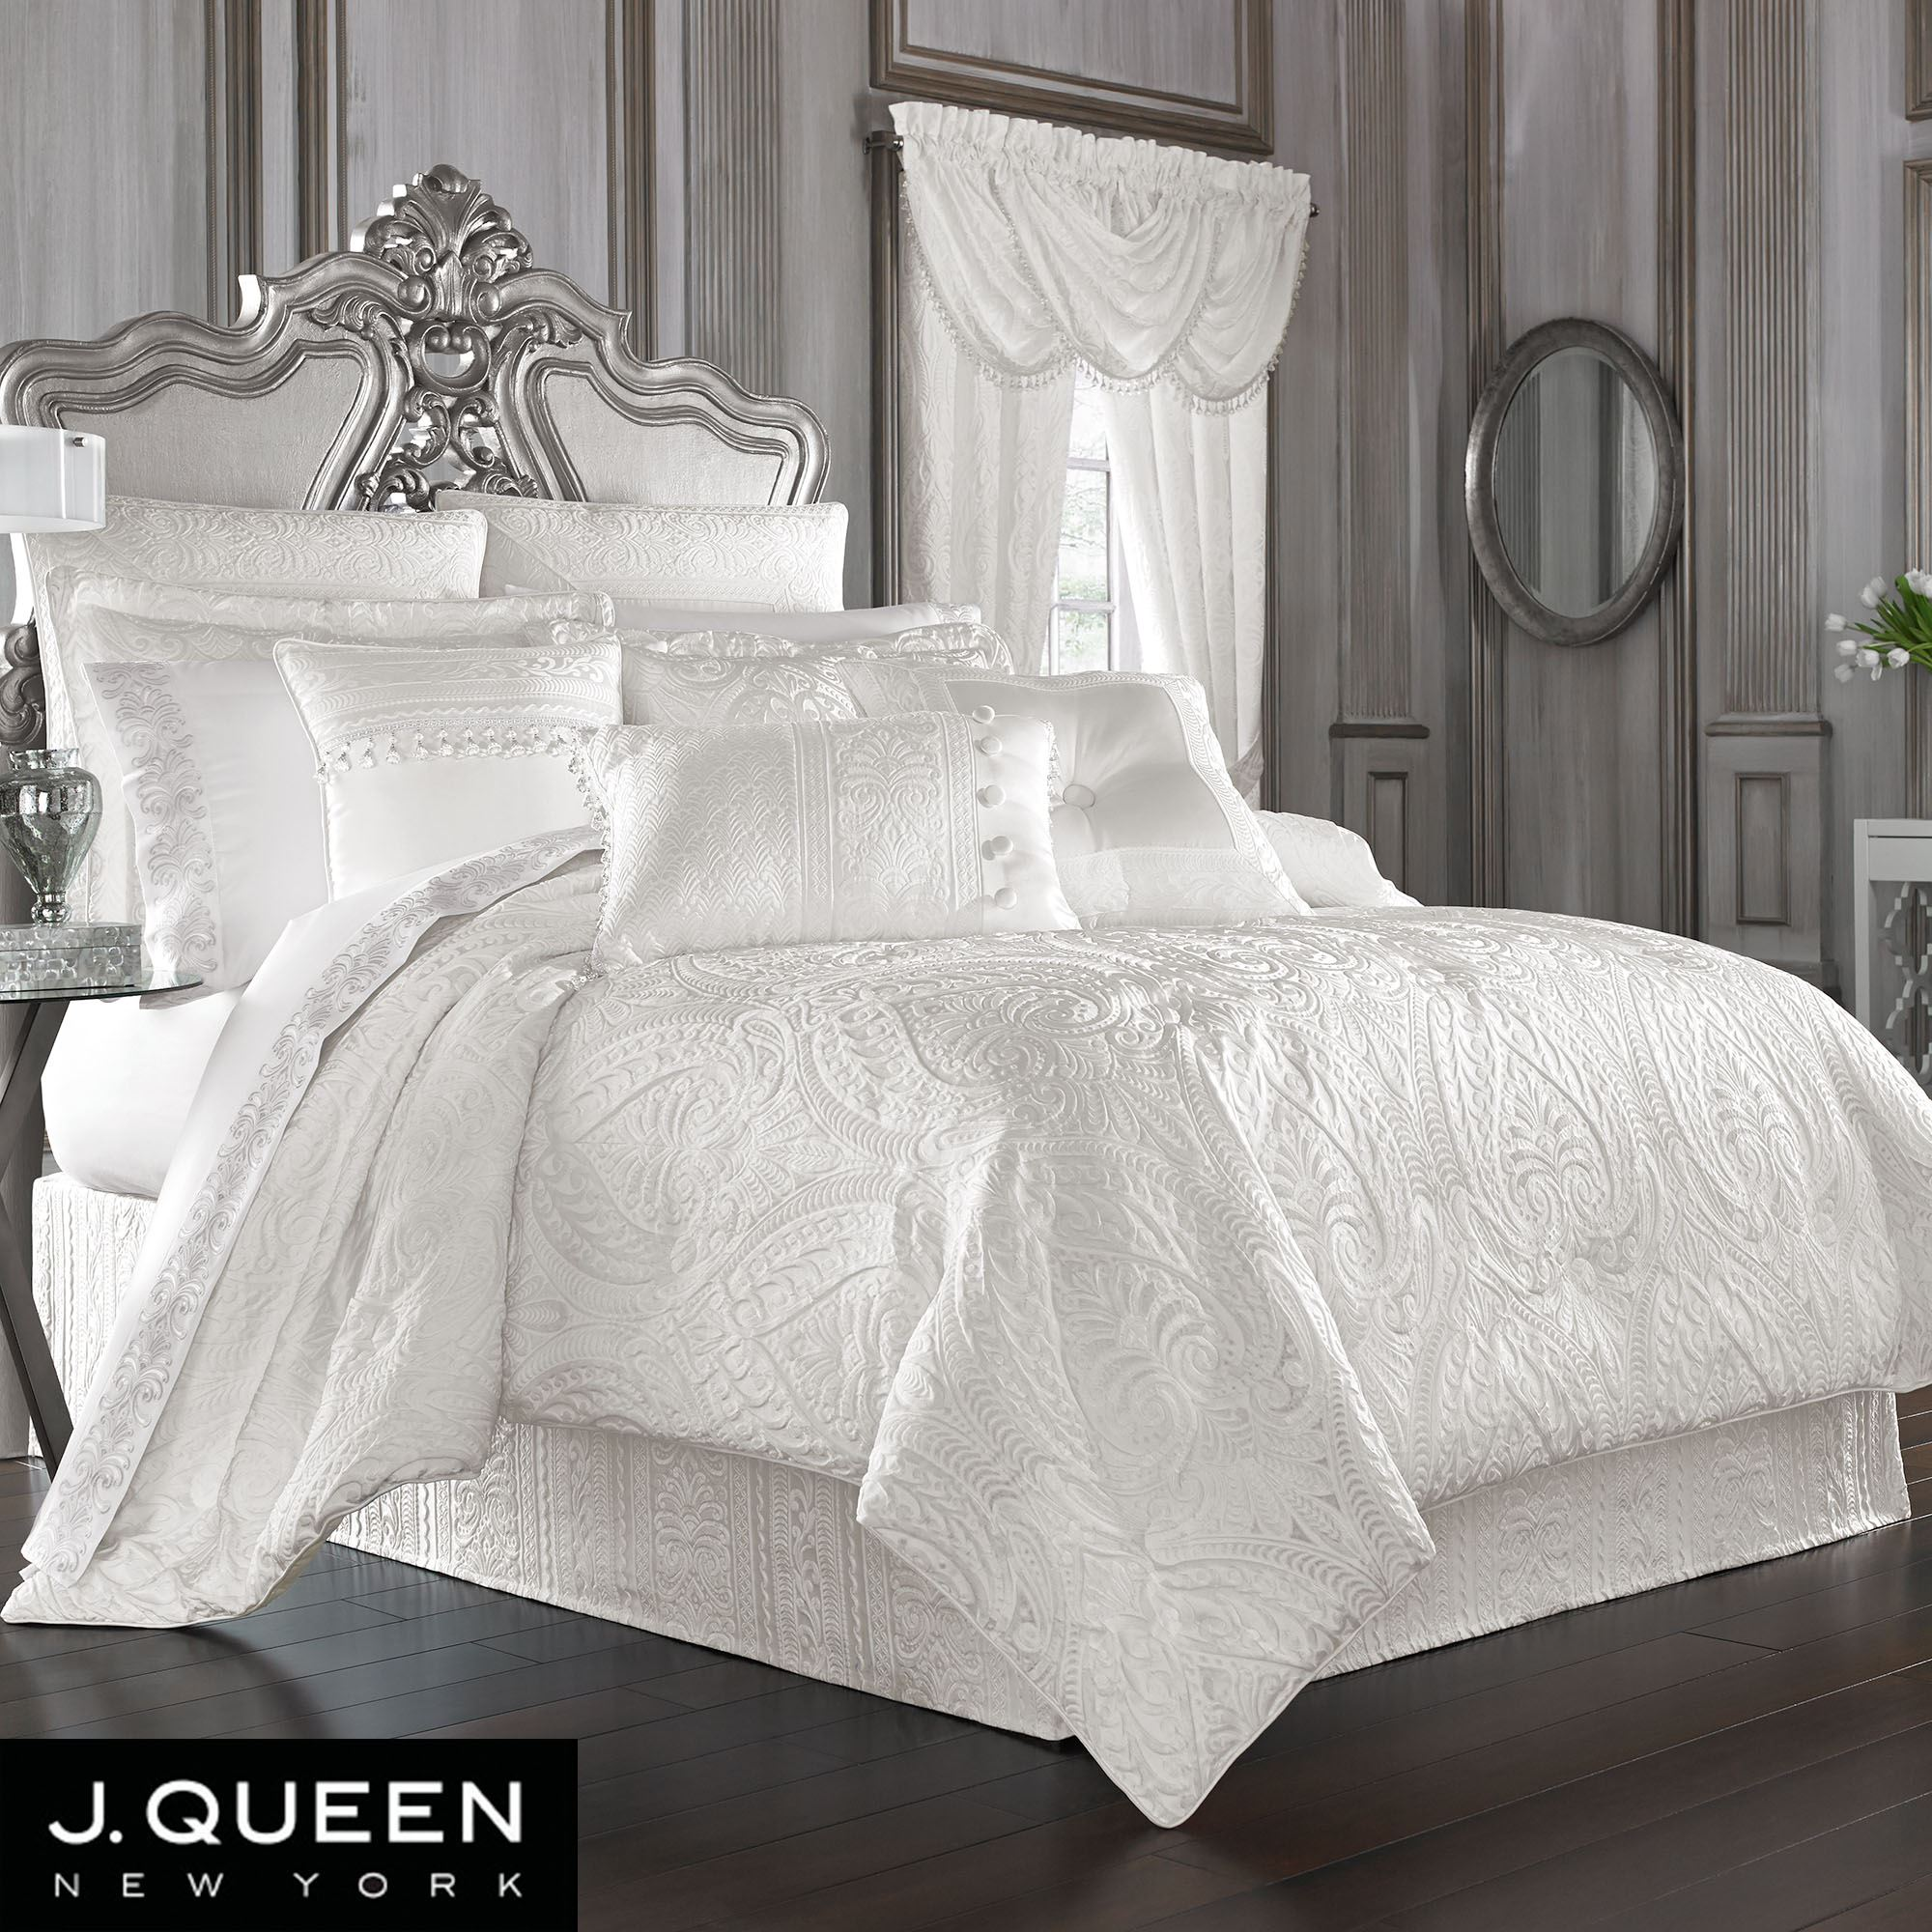 bedding comforter dibinekadar set gallery bett hotel damask york new by seville decoration queen scroll j